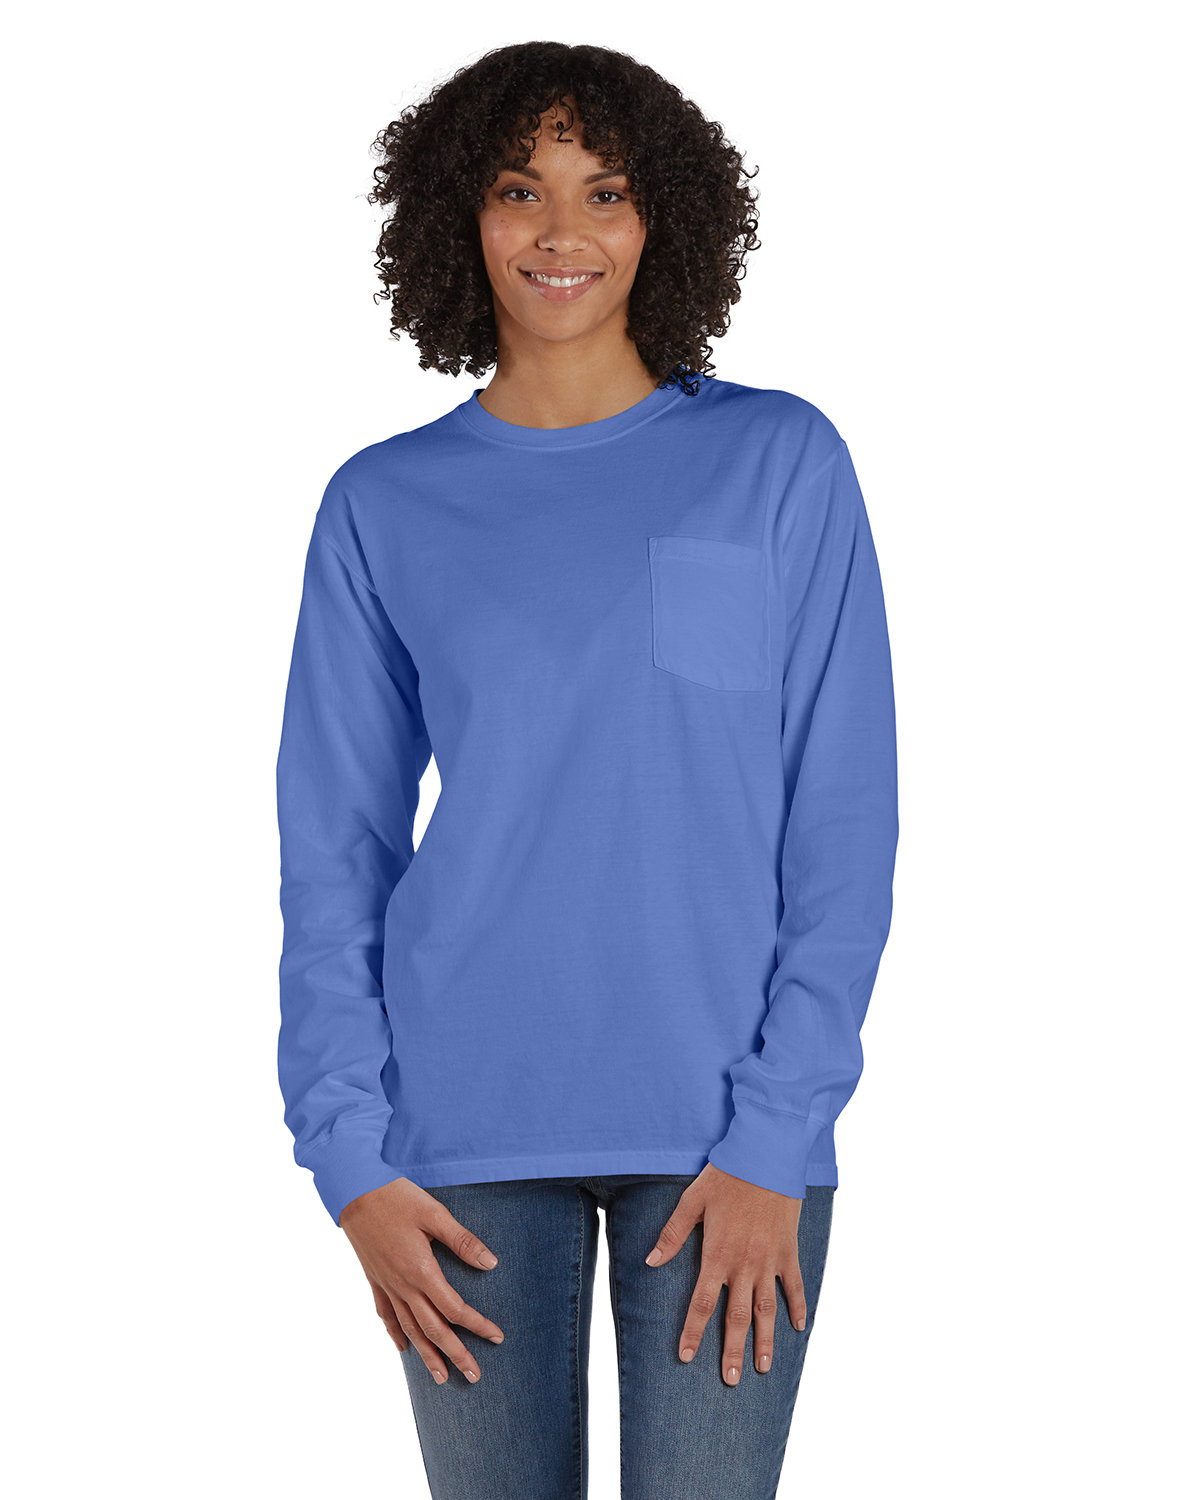 ComfortWash by Hanes Unisex Garment-Dyed Long-Sleeve T-Shirt with Pocket DEEP FORTE